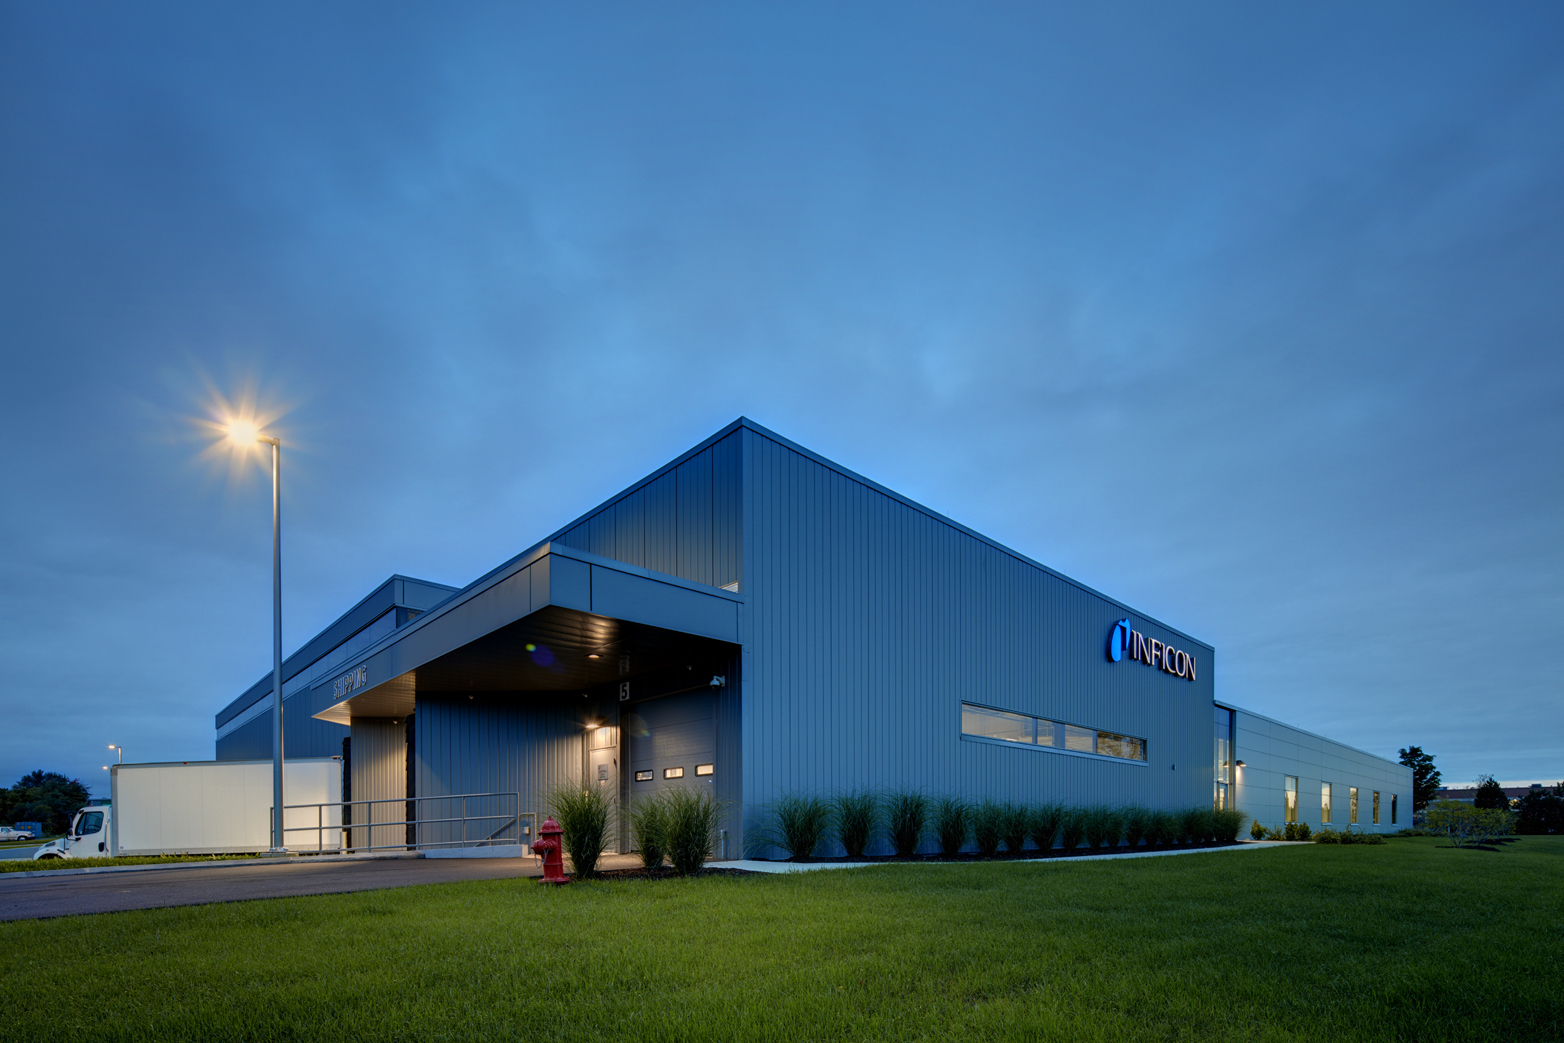 John P. Stopen Inficon Industrial Project exterior at night